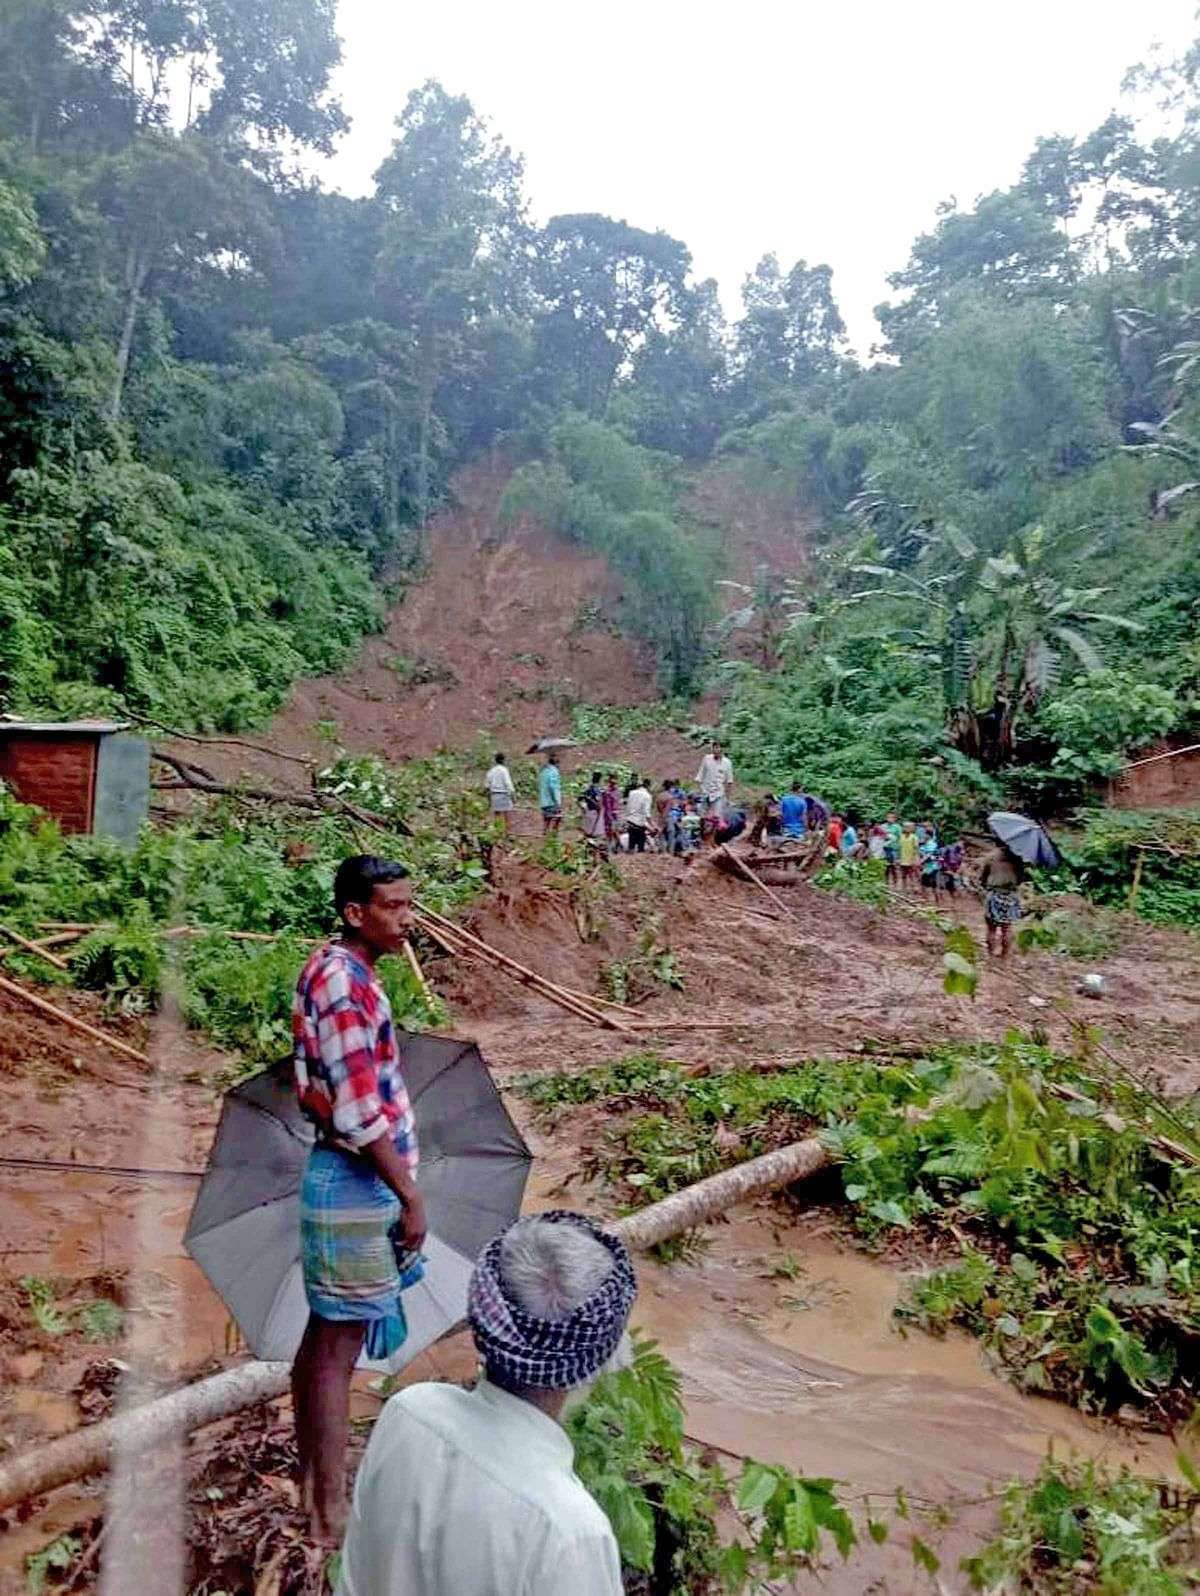 At least 20 killed in landslides in Southern Assam, several others injured